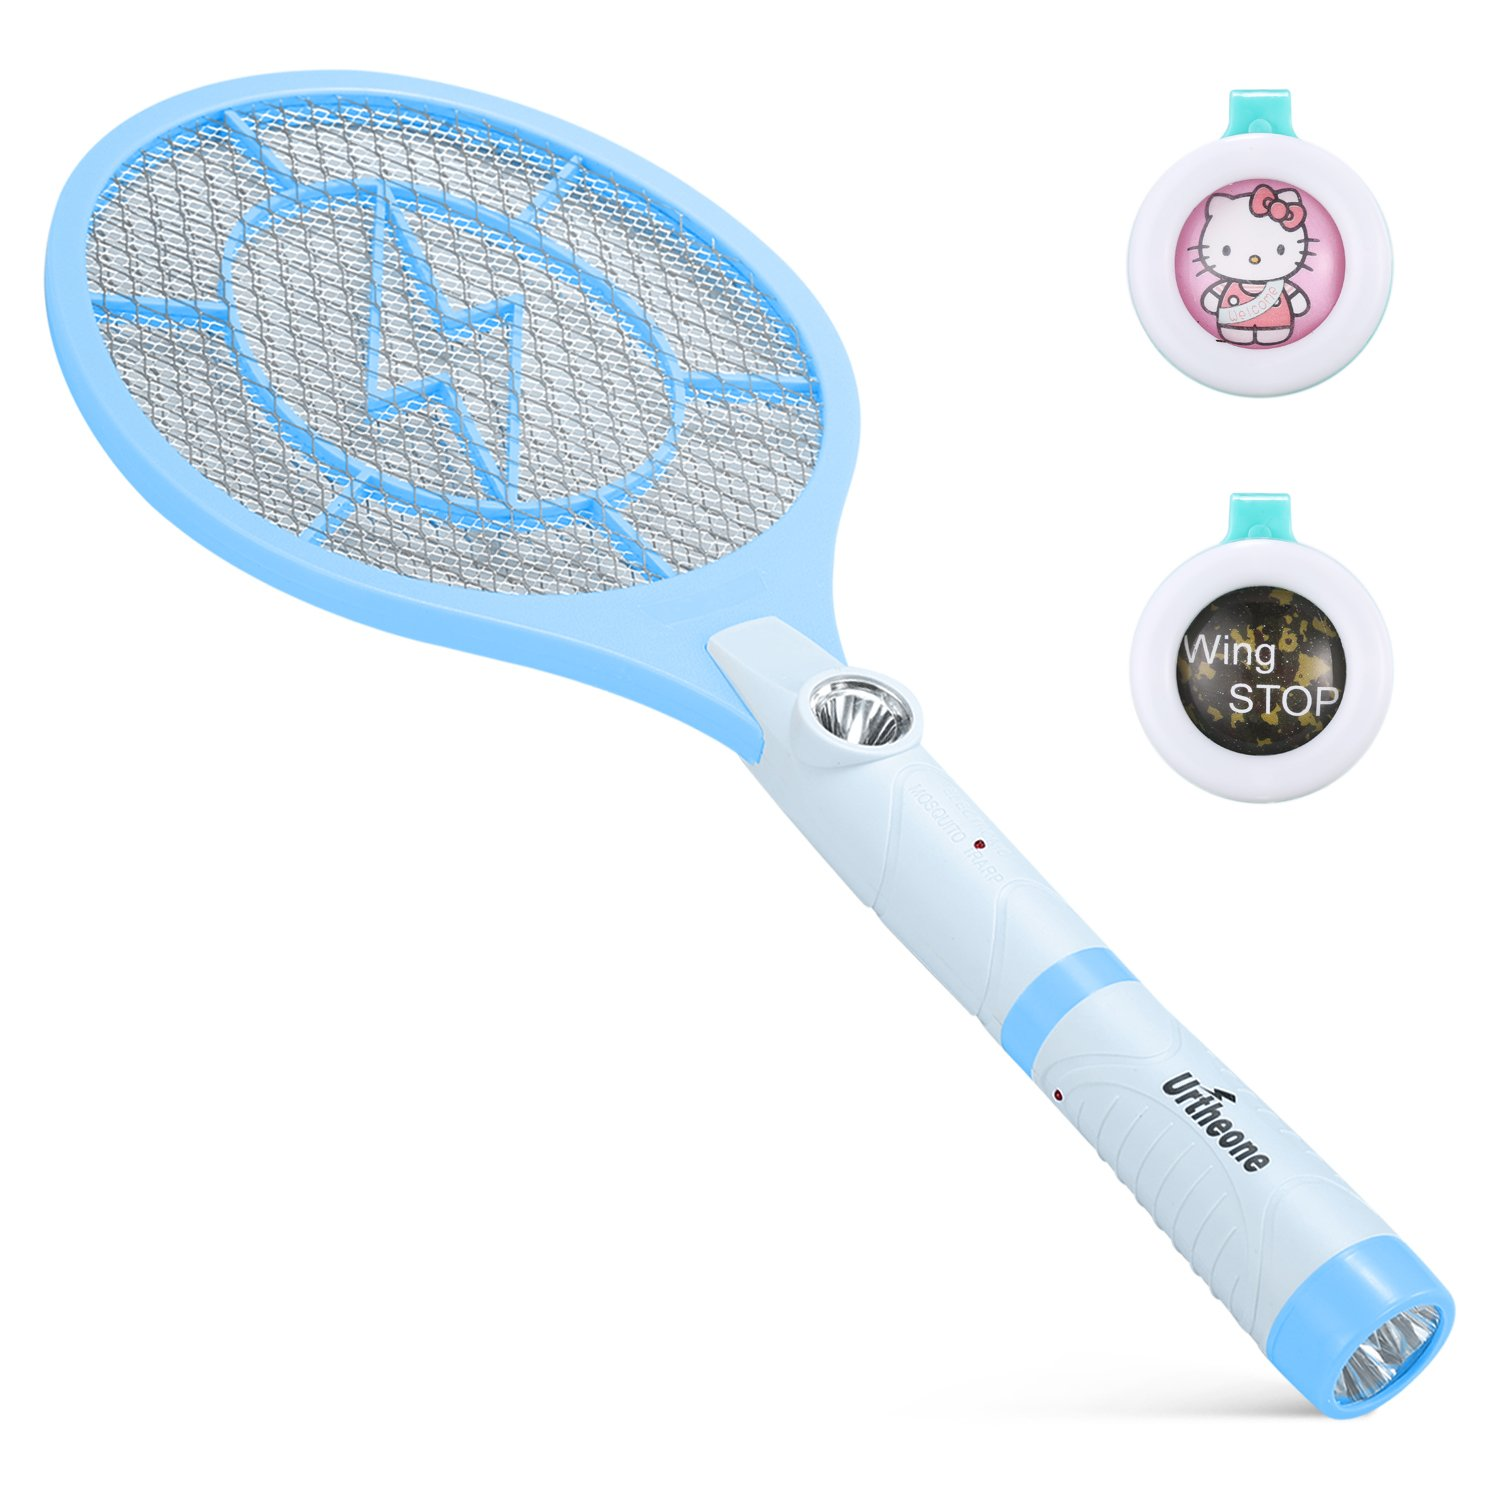 Urtheone Bug Zapper, Rechargeable Electric Fly Swatter Handheld Mosquito Insect Killer, 3800 Volt Mosquito Zapper Racket Detachable Flash Light, Suitable Indoor, Travel, Campings Outdoor